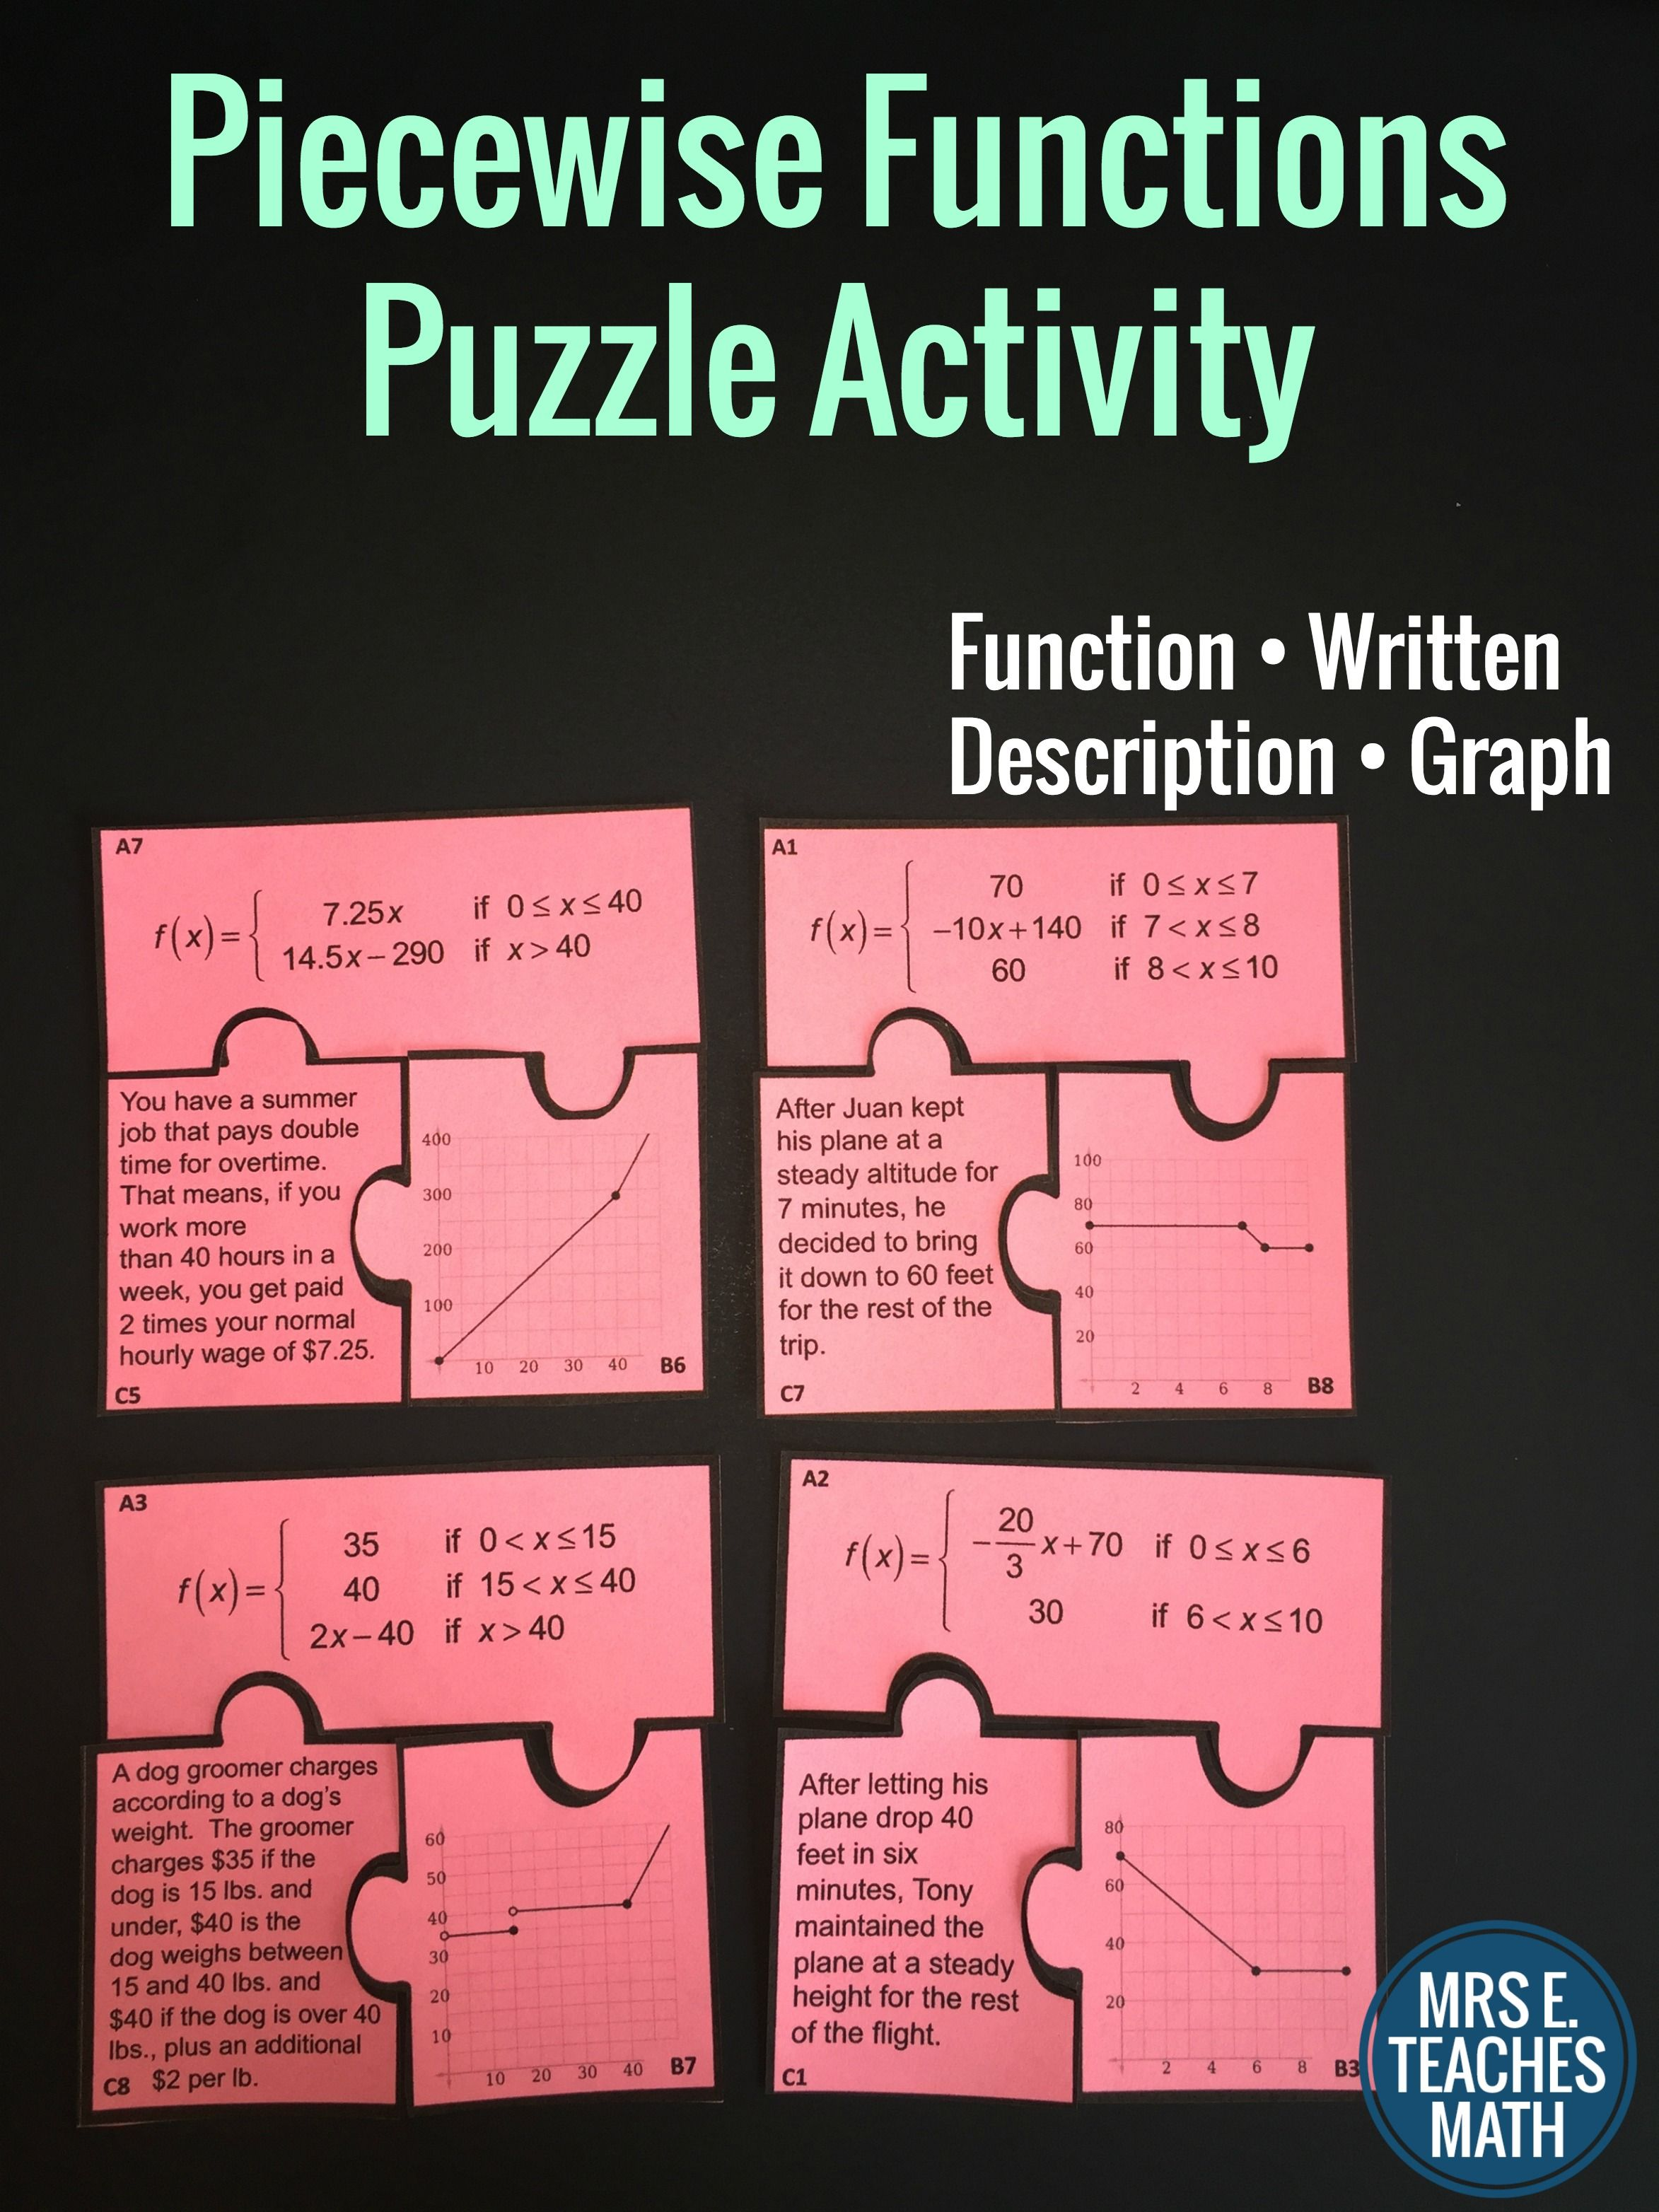 Piecewise Functions Cut Out Puzzle Resources For High School Description Of Function Activity Students Match The Graph And A In Words